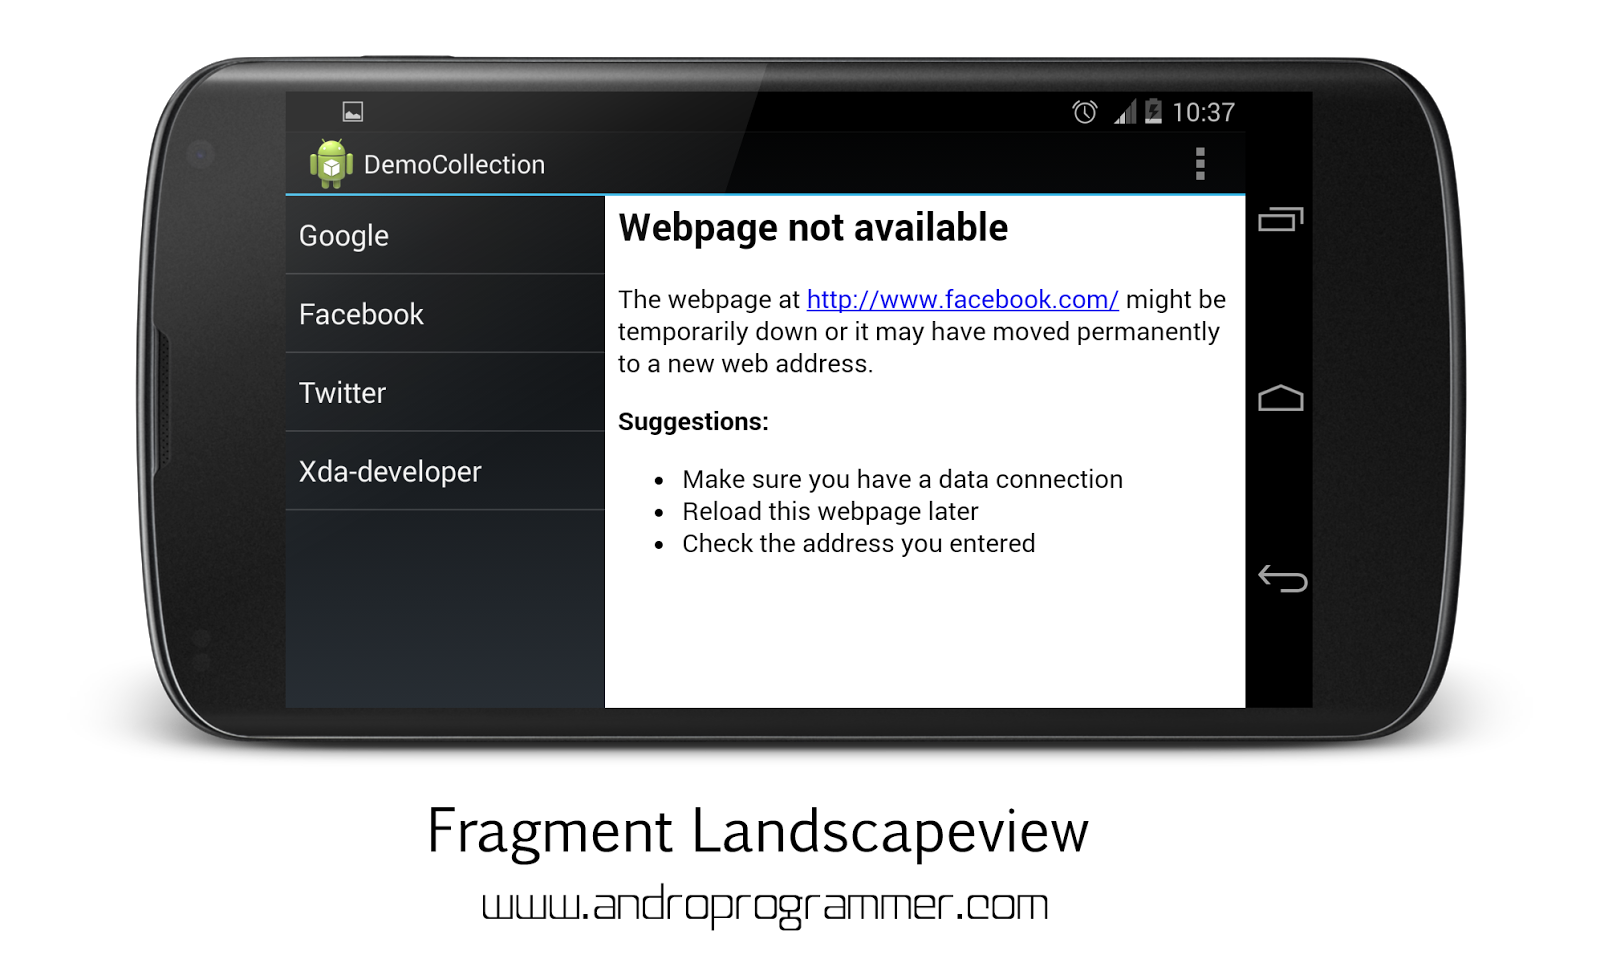 Fragments in android